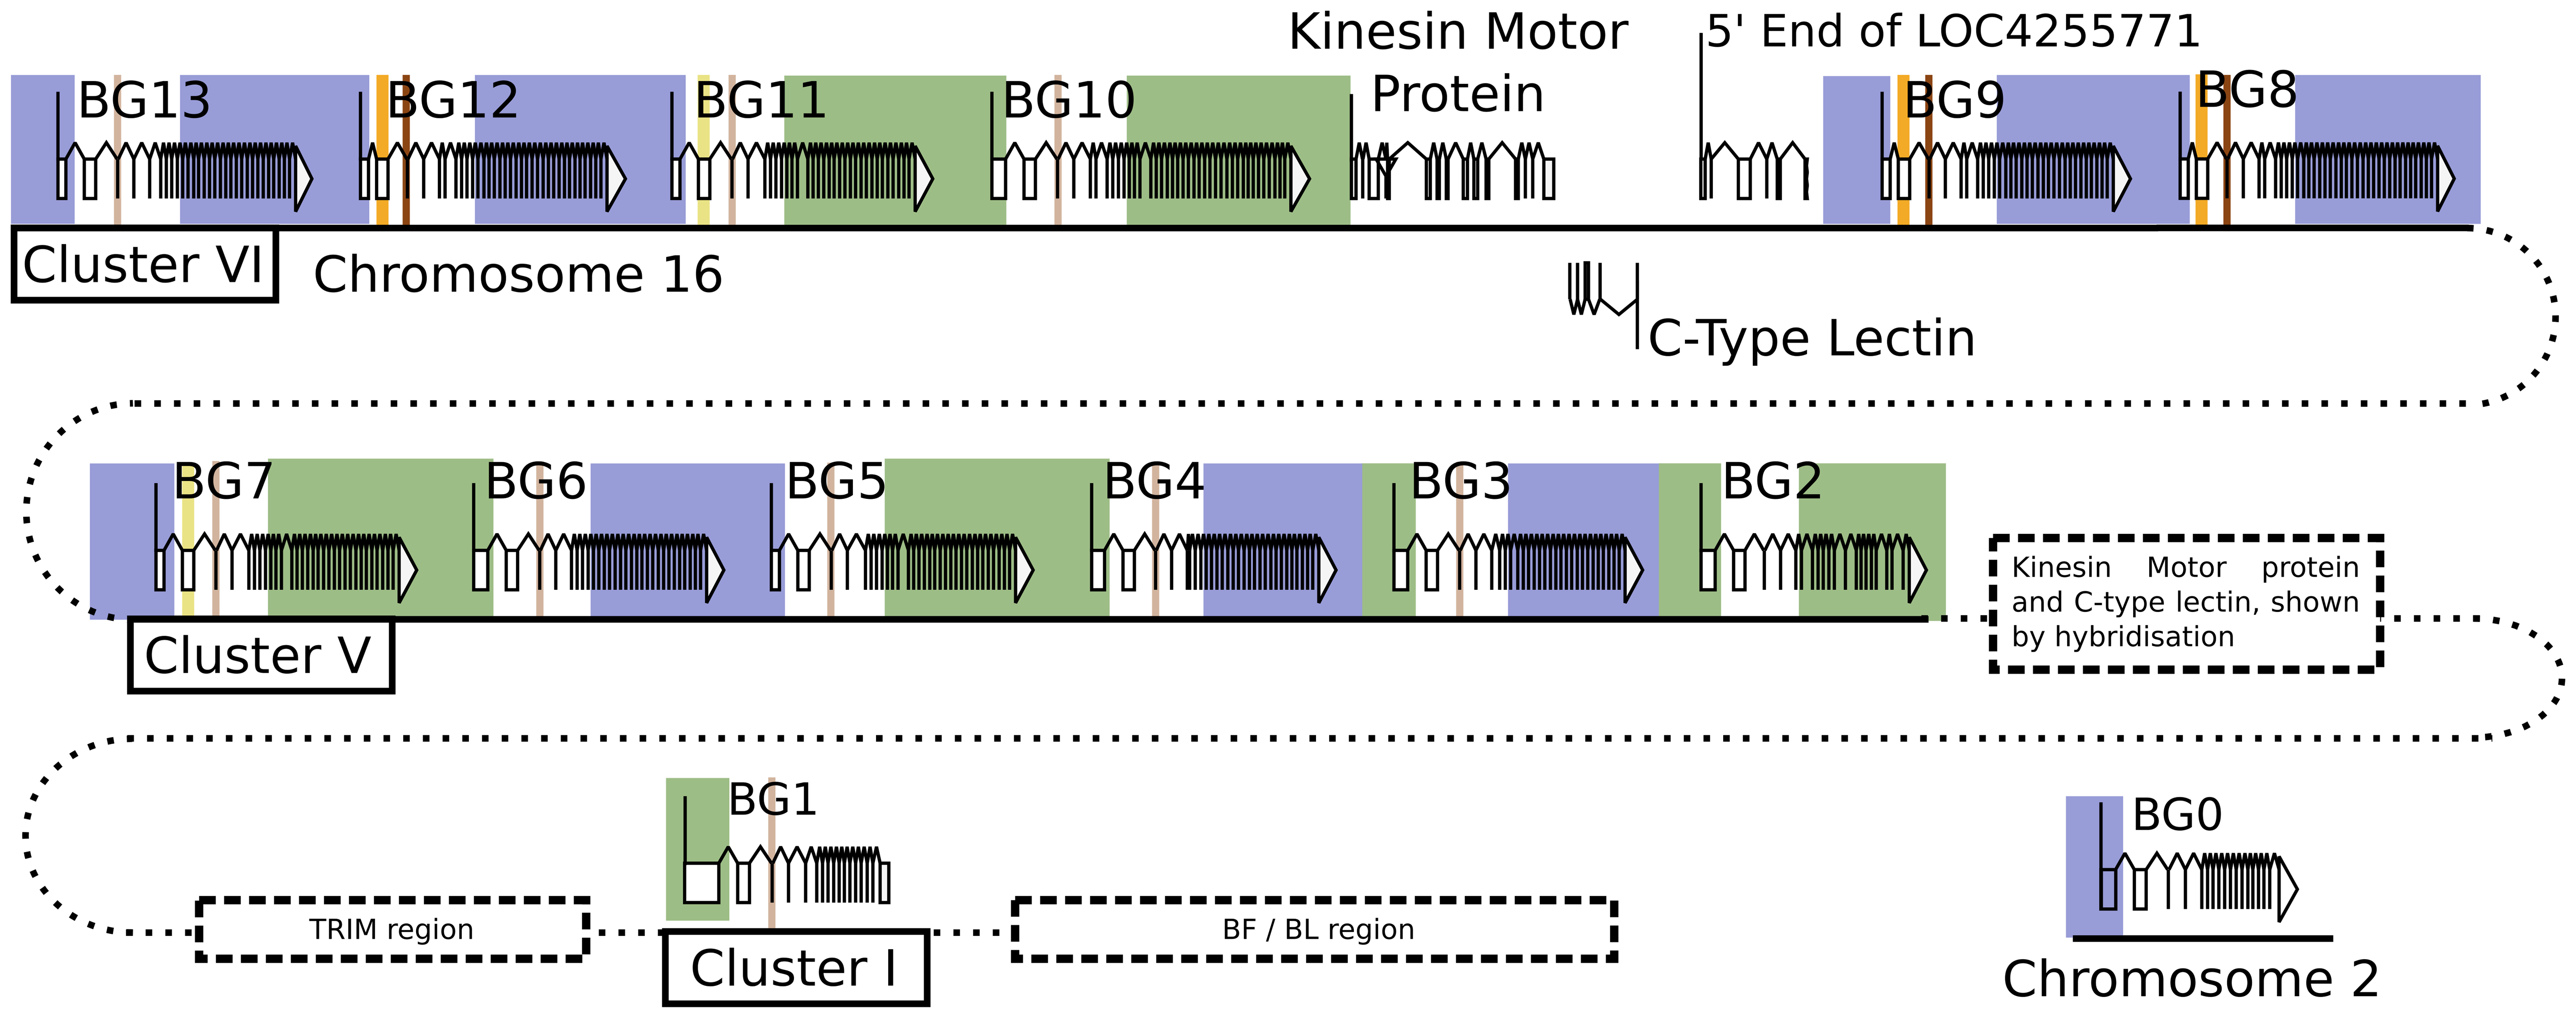 The presence of hybrid BG genes in the B12 haplotype shows no obvious pattern, consistent with a random process of recombination in the centre of the genes.